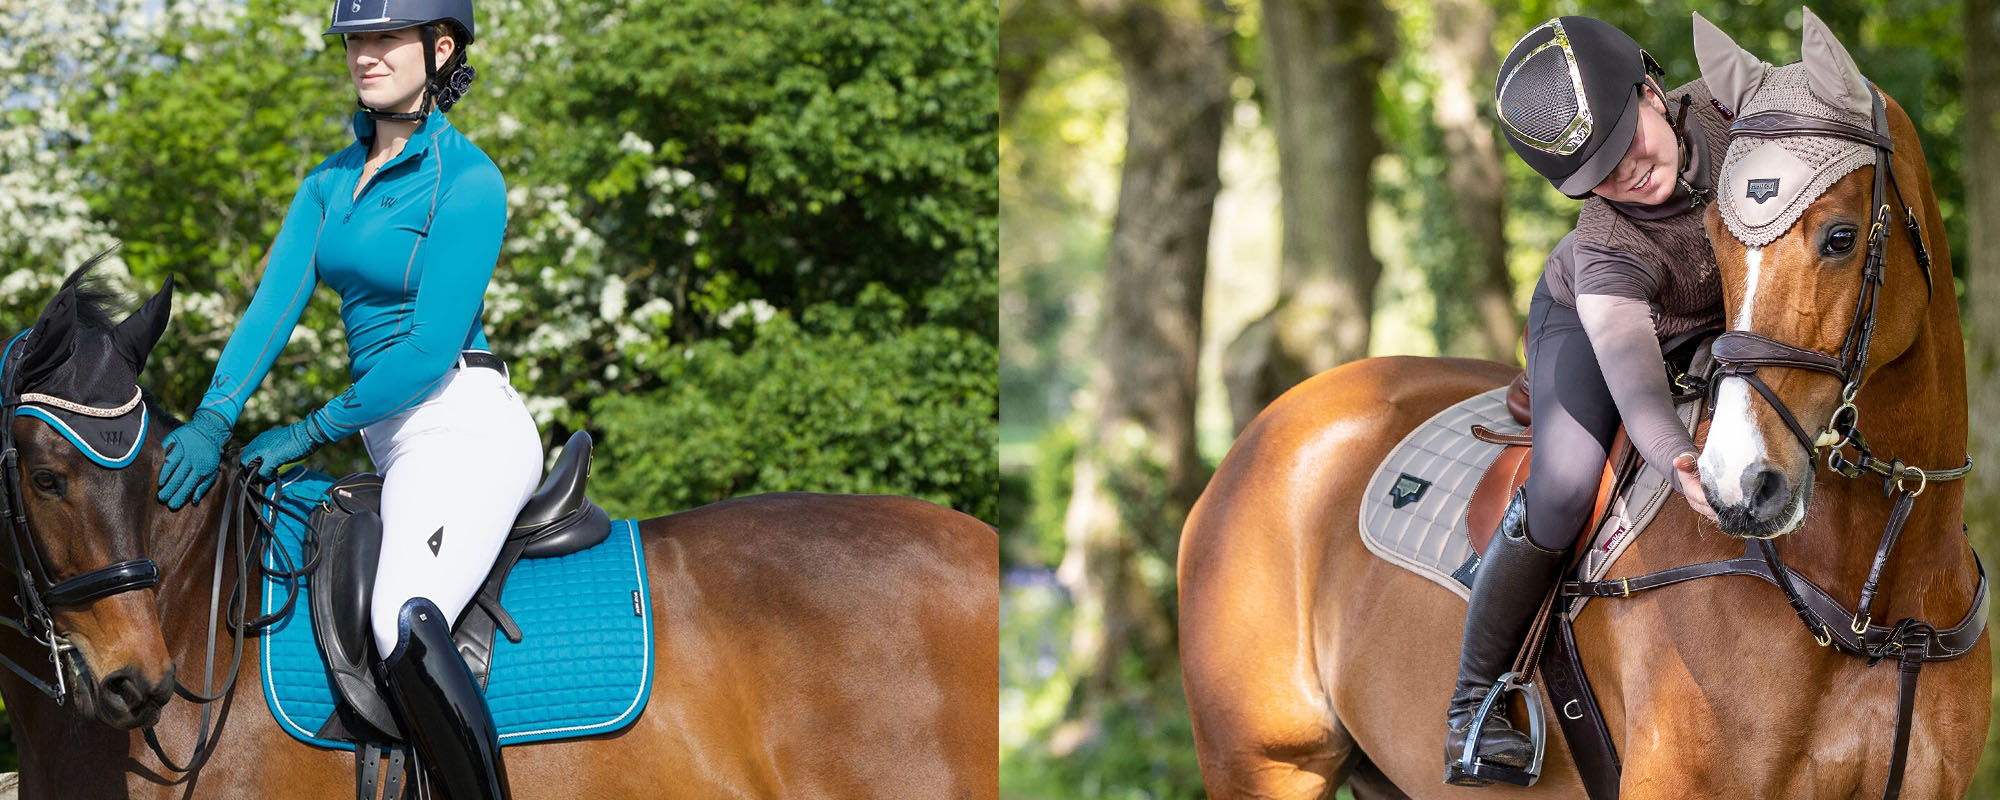 Matchy Matchy for Horse and Rider 3